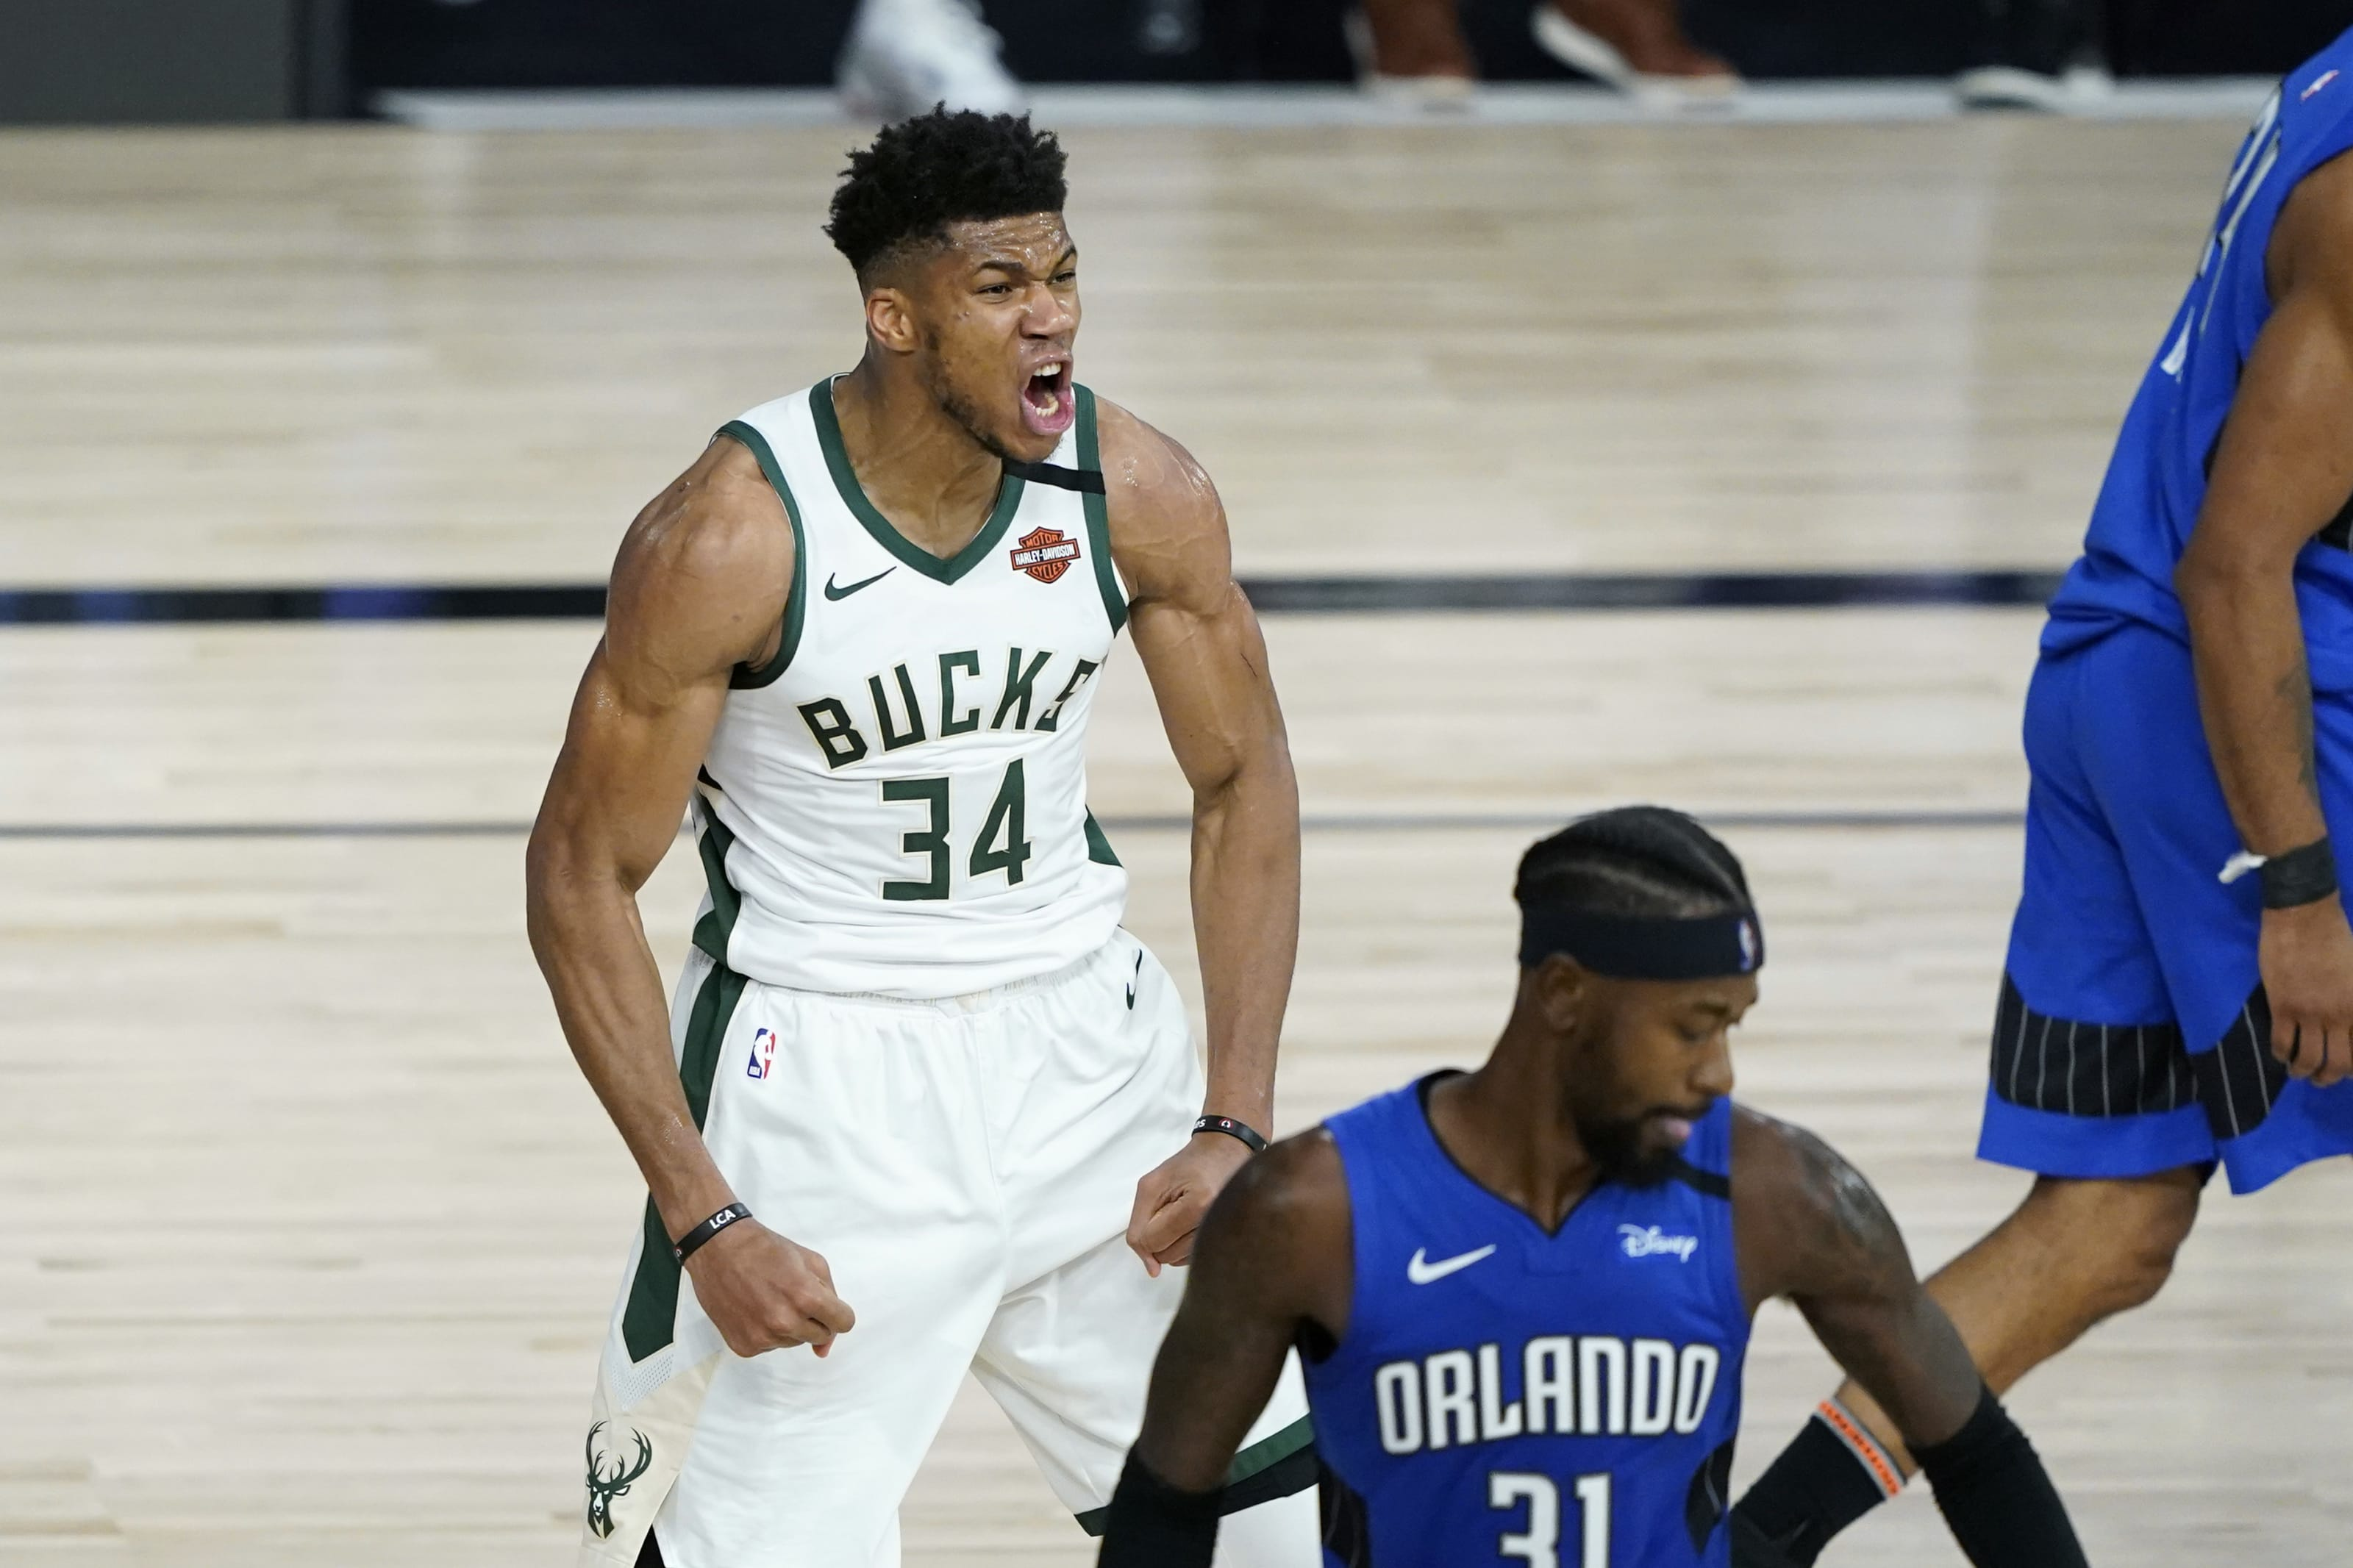 Milwaukee Bucks: Pros and cons of Giannis Antetokounmpo at center